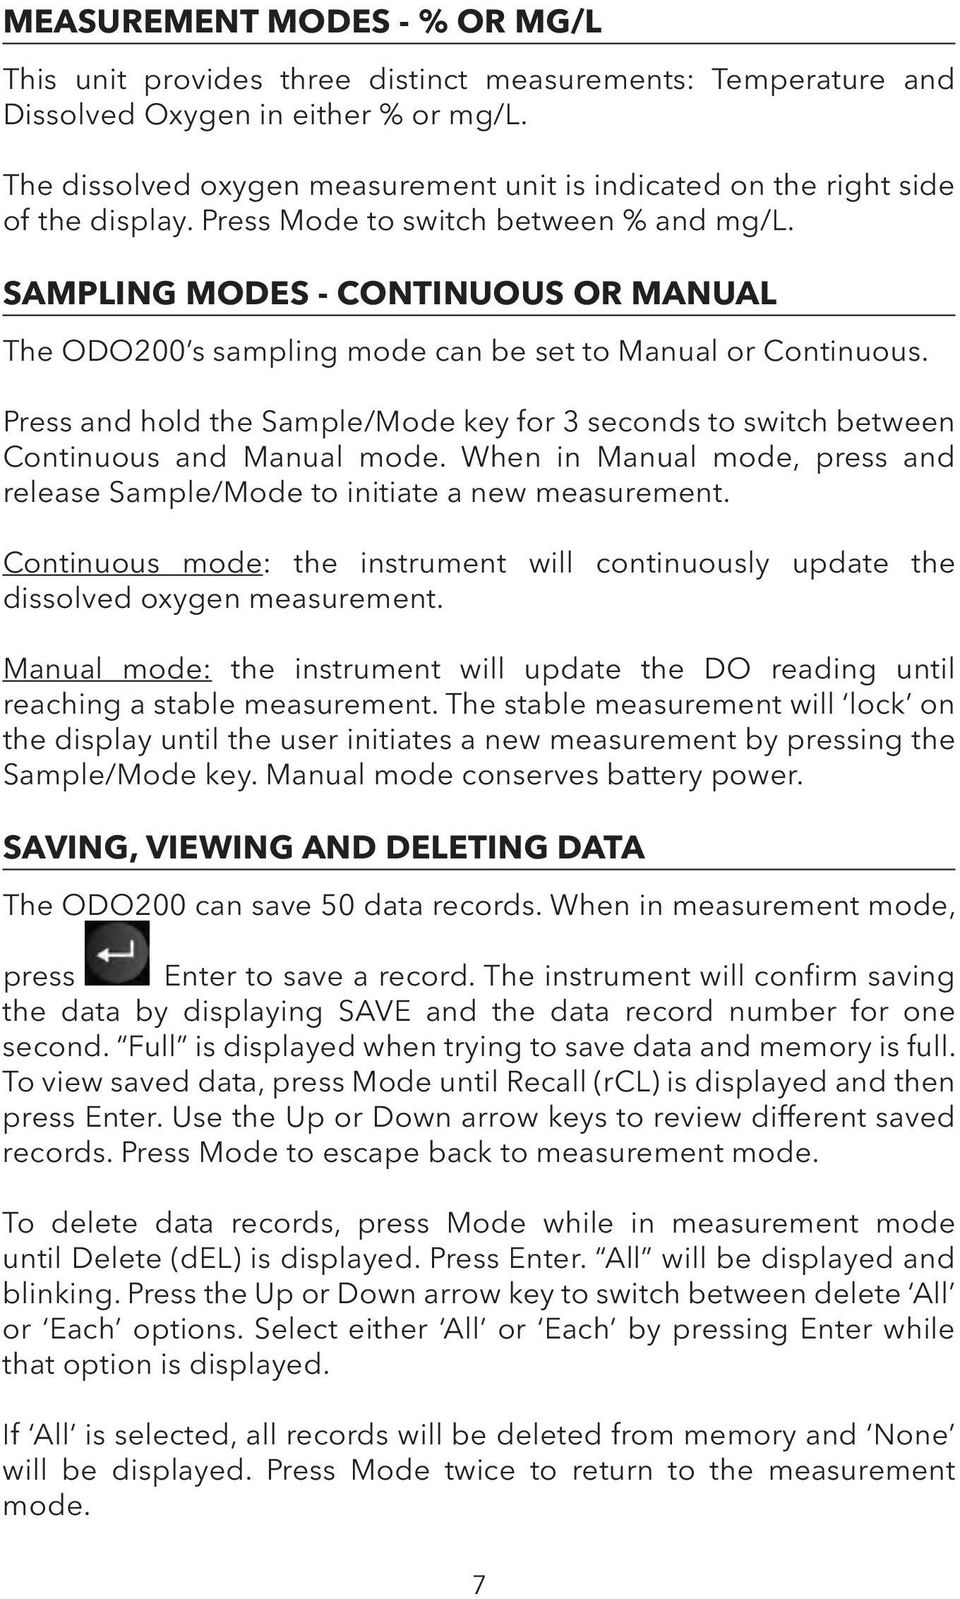 SAMPLING MODES - CONTINUOUS OR MANUAL The ODO200 s sampling mode can be set to Manual or Continuous. Press and hold the Sample/Mode key for 3 seconds to switch between Continuous and Manual mode.